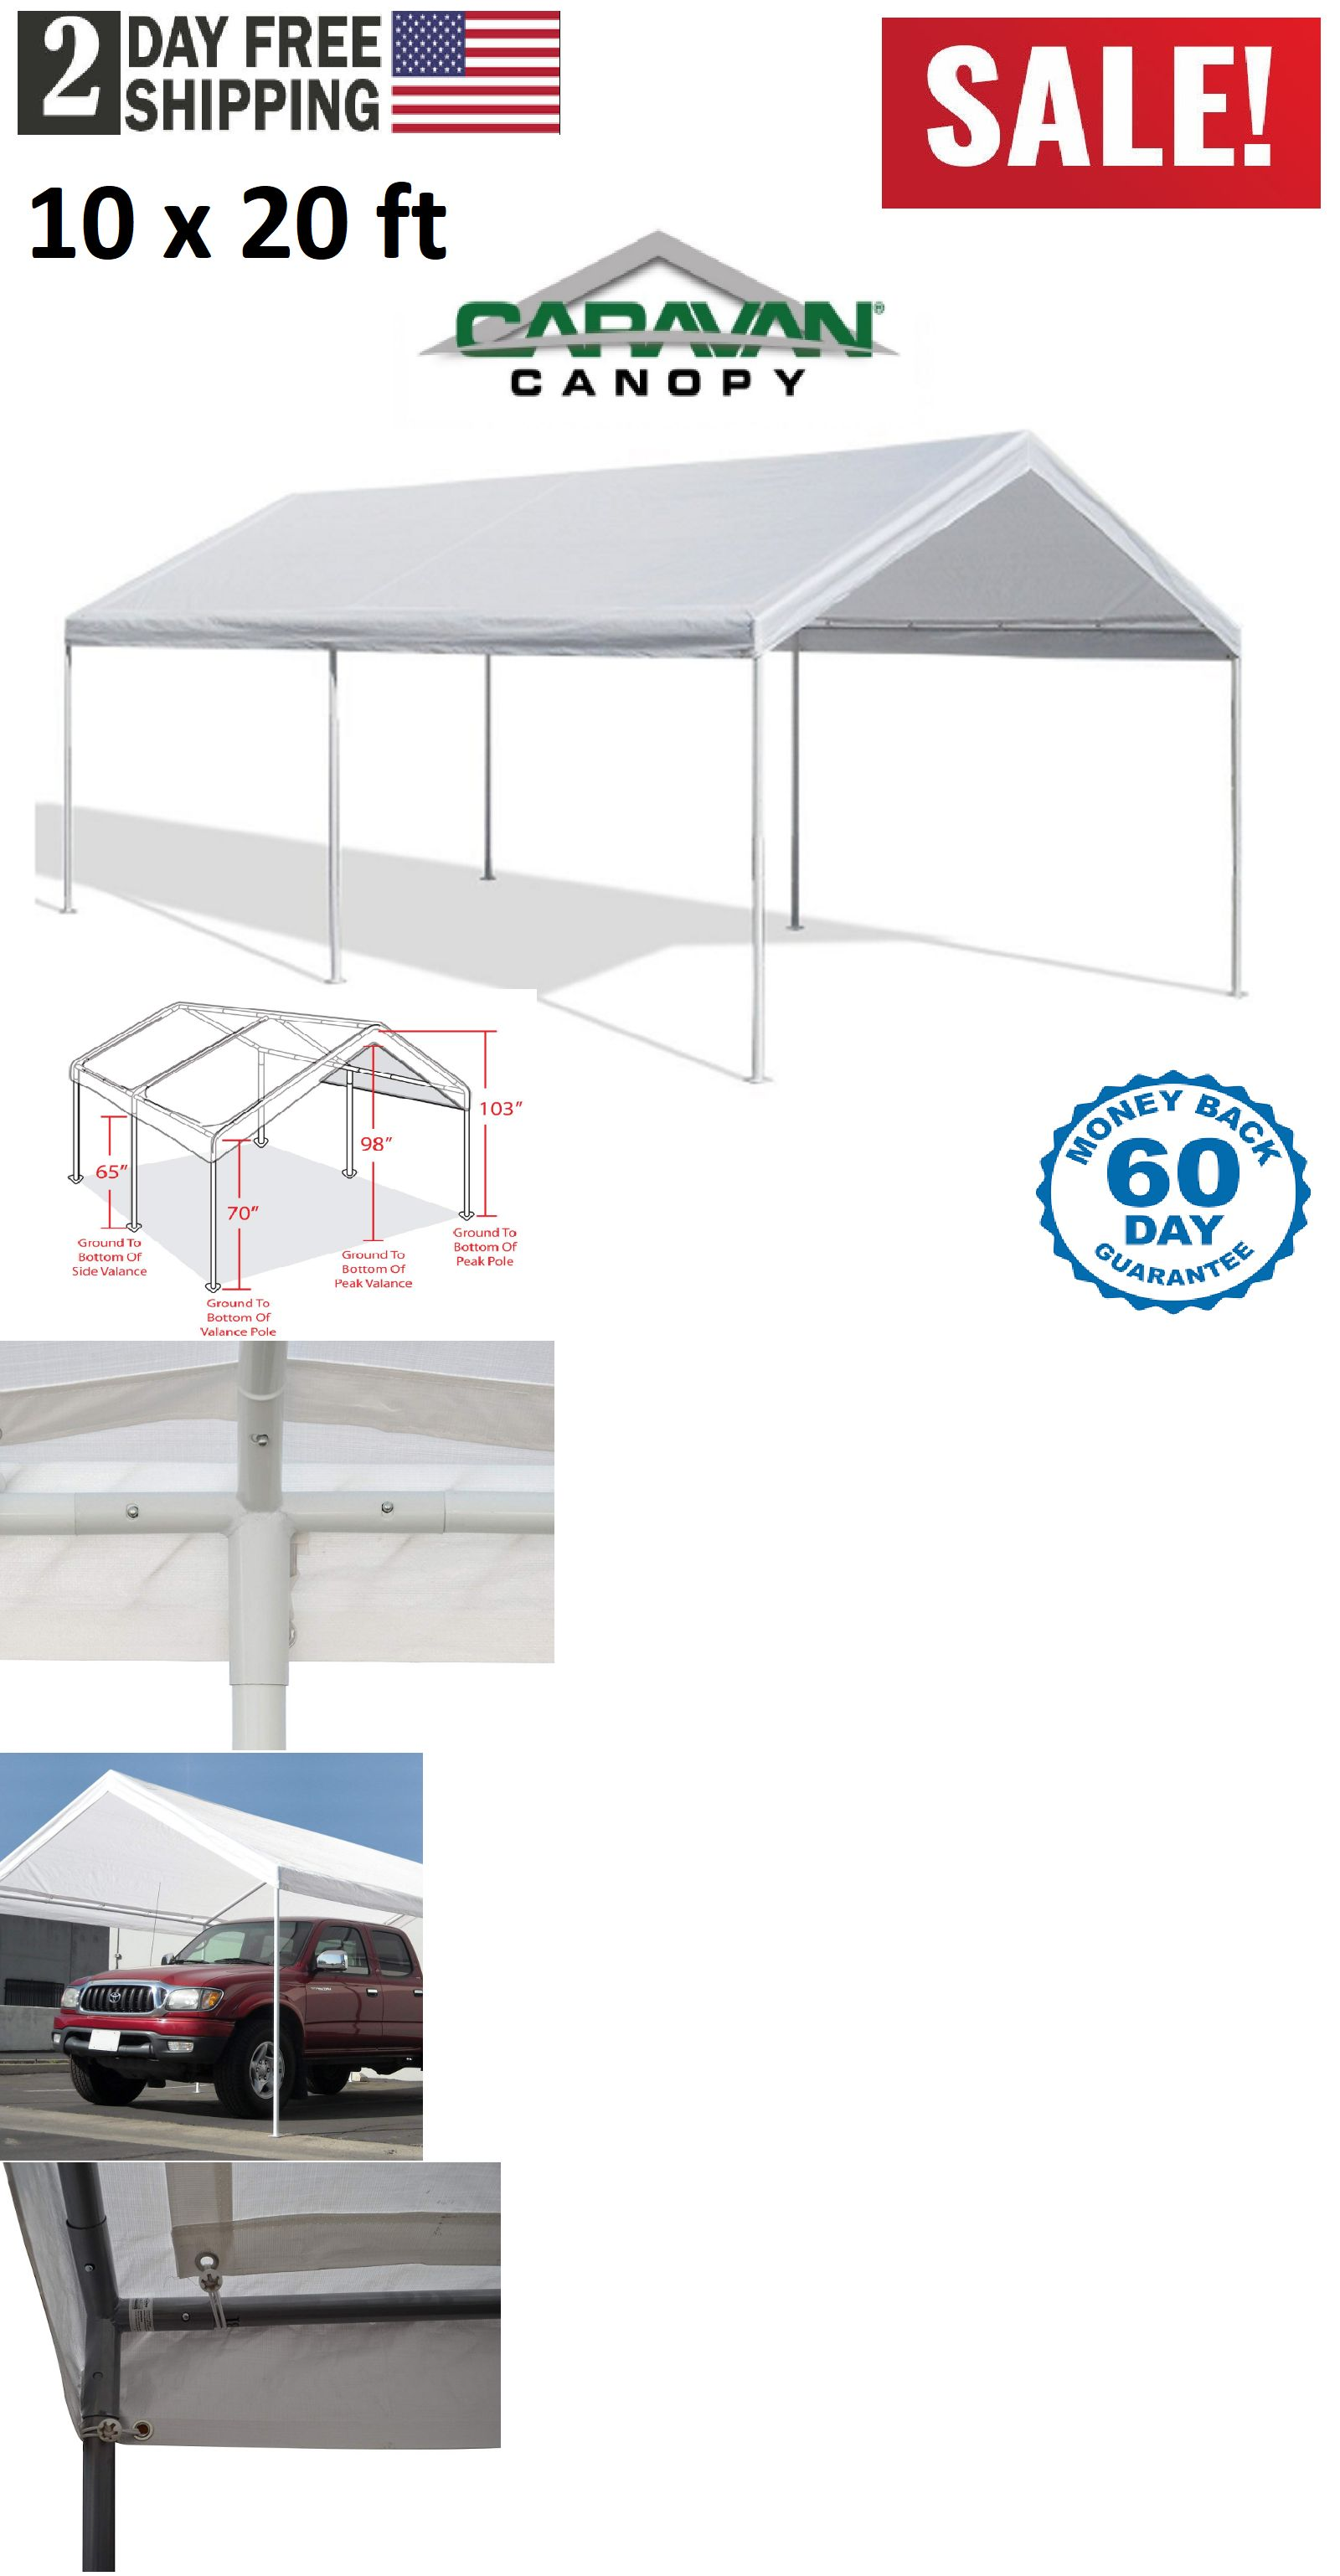 Awnings And Canopies 180992 White Heavy Duty Canopy Tent 10x20 Ft Steel Carport Portable Car Shelter 6 Legs Buy It N Portable Gazebo Canopy Tent Canopy